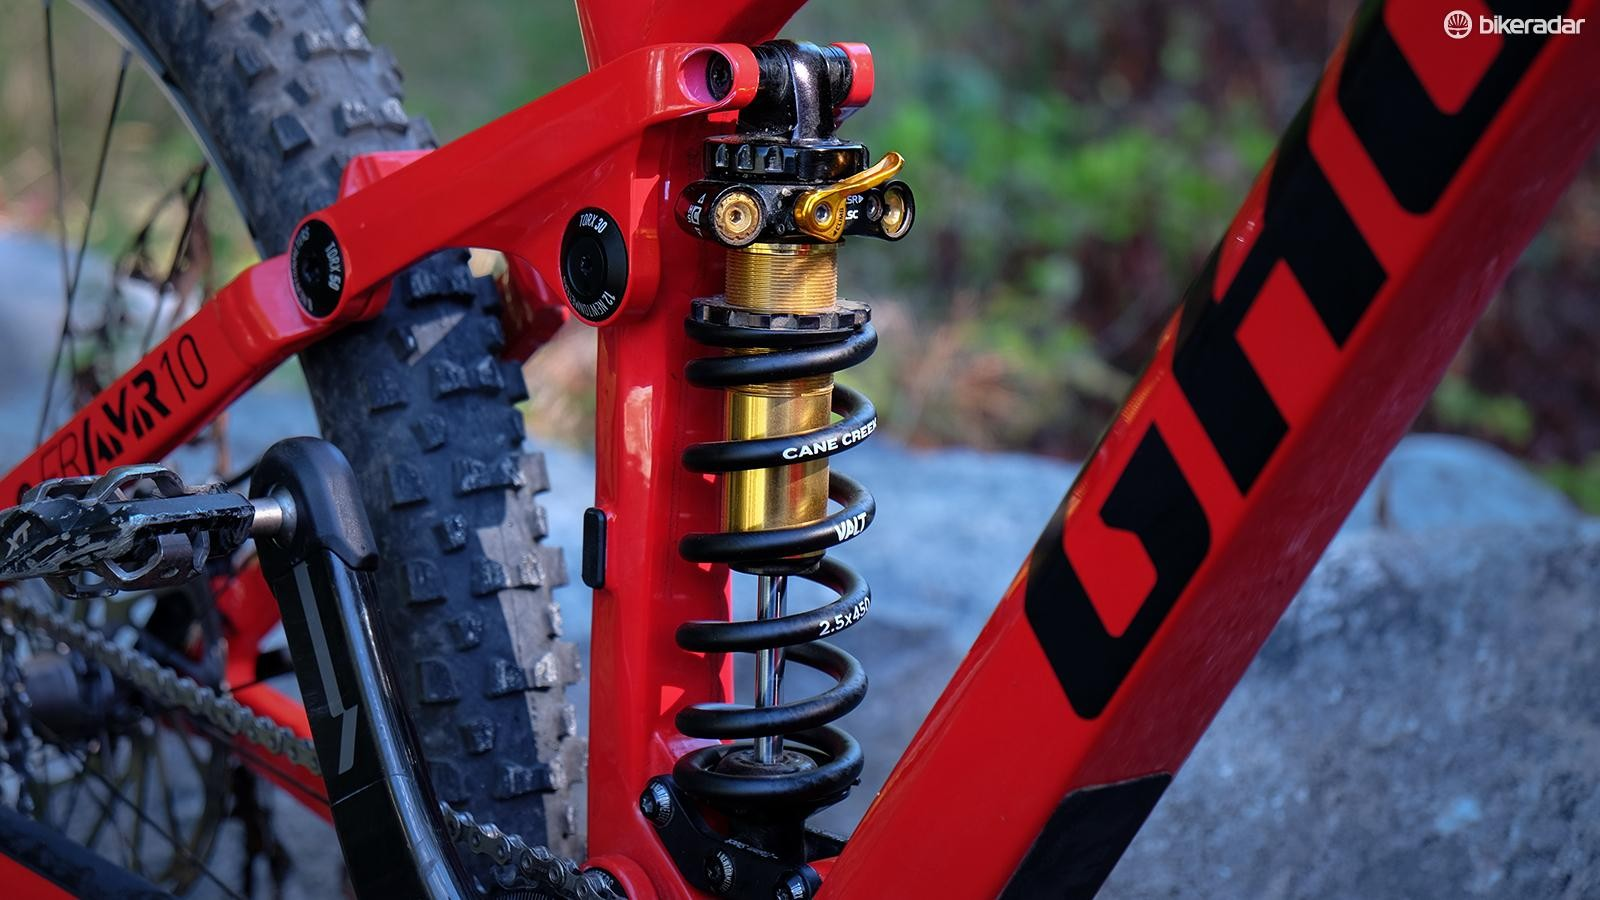 The BDcoil [IL] is an in-line coil designed to fit trail and enduro bikes